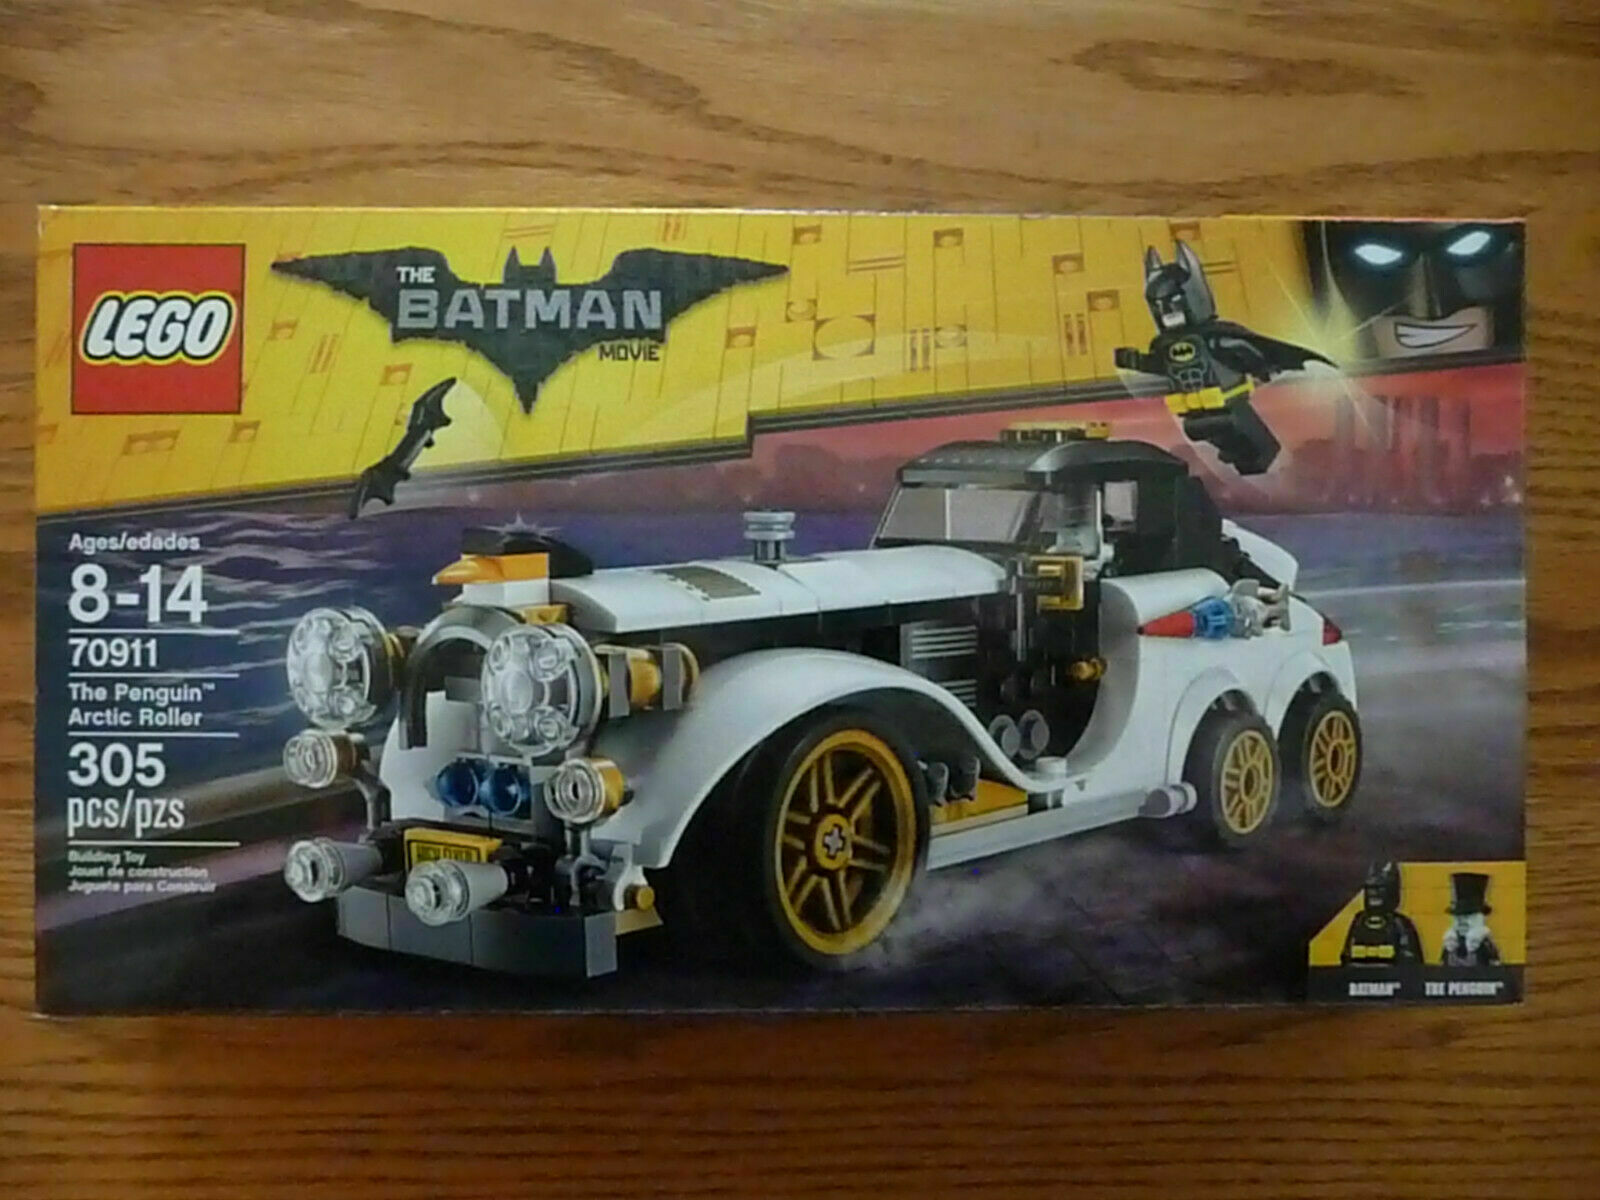 Speelgoed En Spellen Lego 70911 The Batman Movie The Penguin Arctic Roller Rolls Royce Srishtidigilife Co In